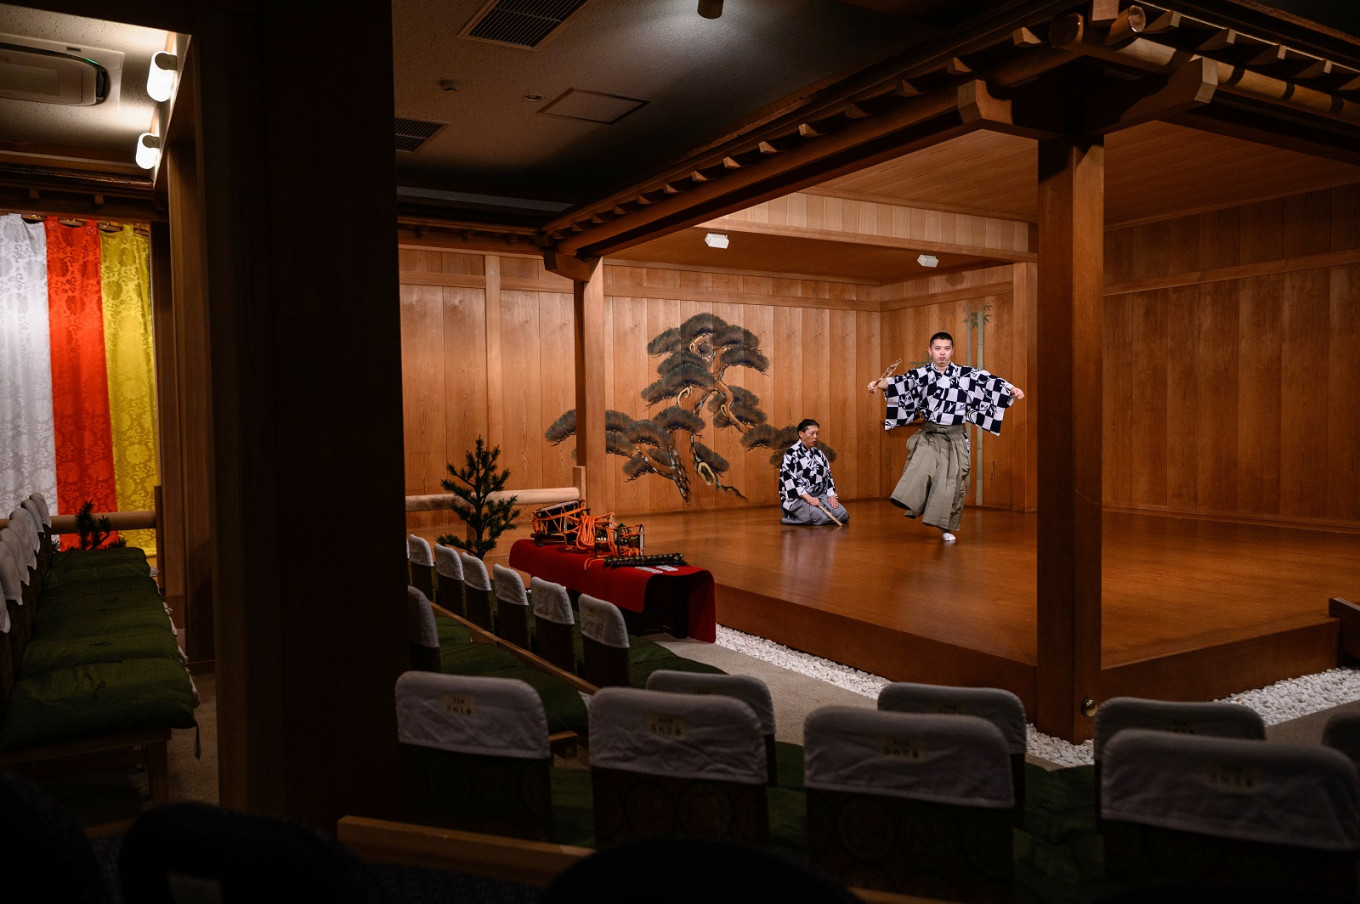 Can Japan's ancient Noh theater survive coronavirus?